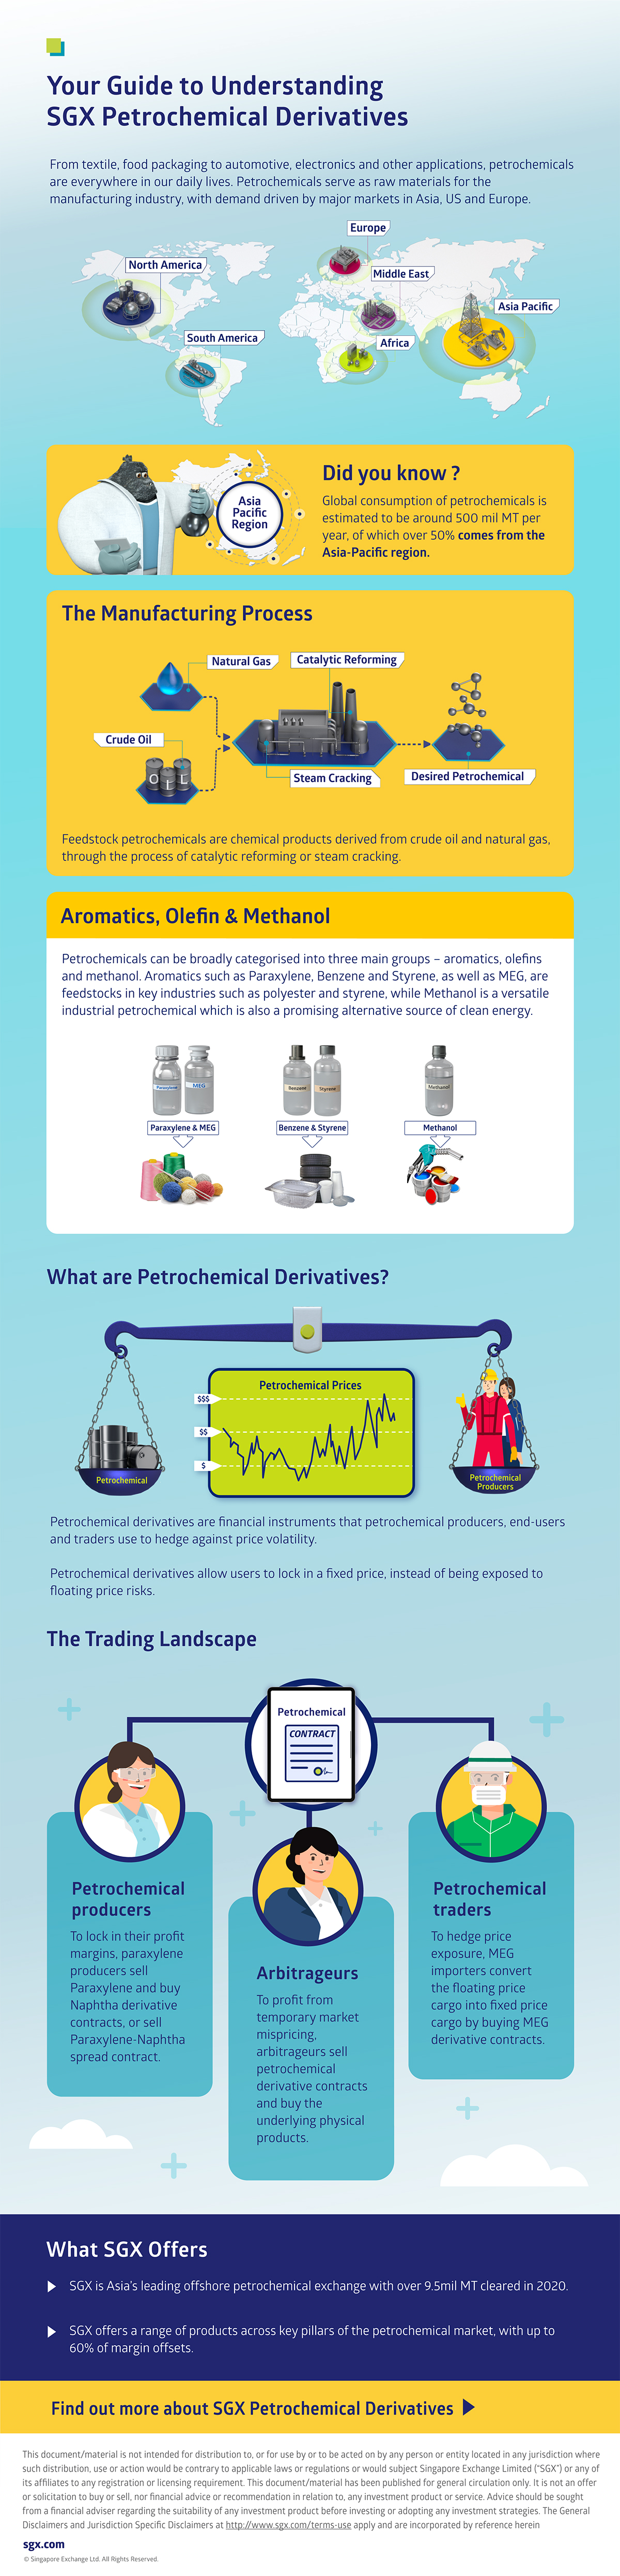 Your Guide to Understanding SGX Petrochemical Derivatives